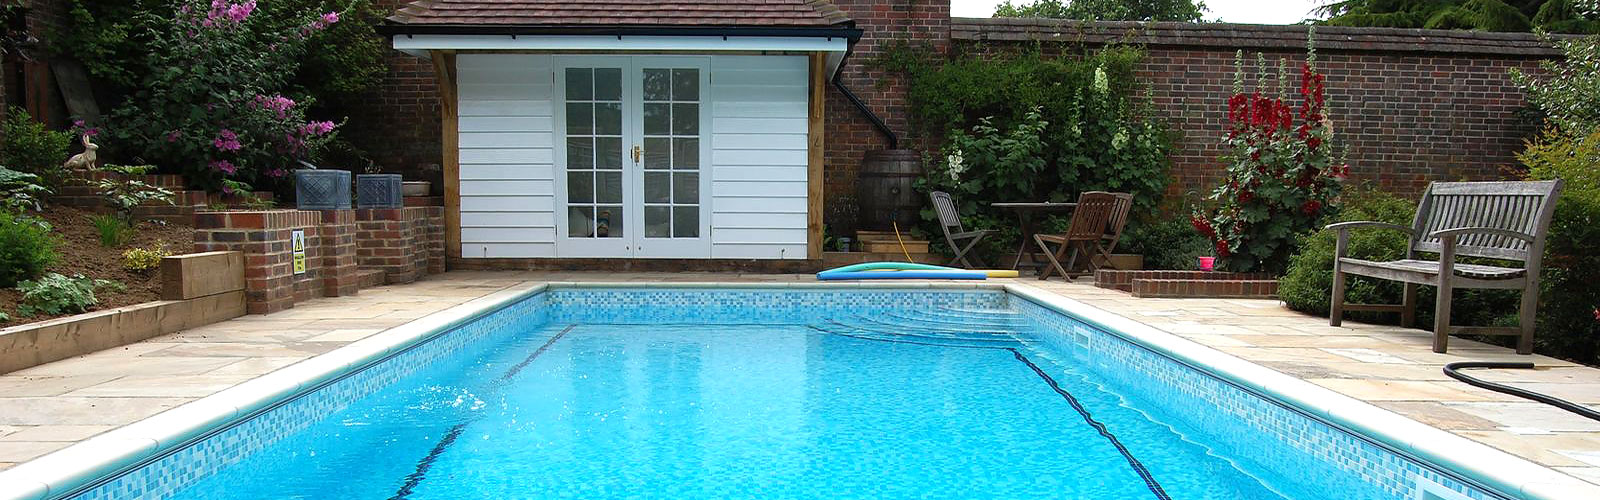 Outdoor Swimming Pools Buckland Pool Reigate Surrey